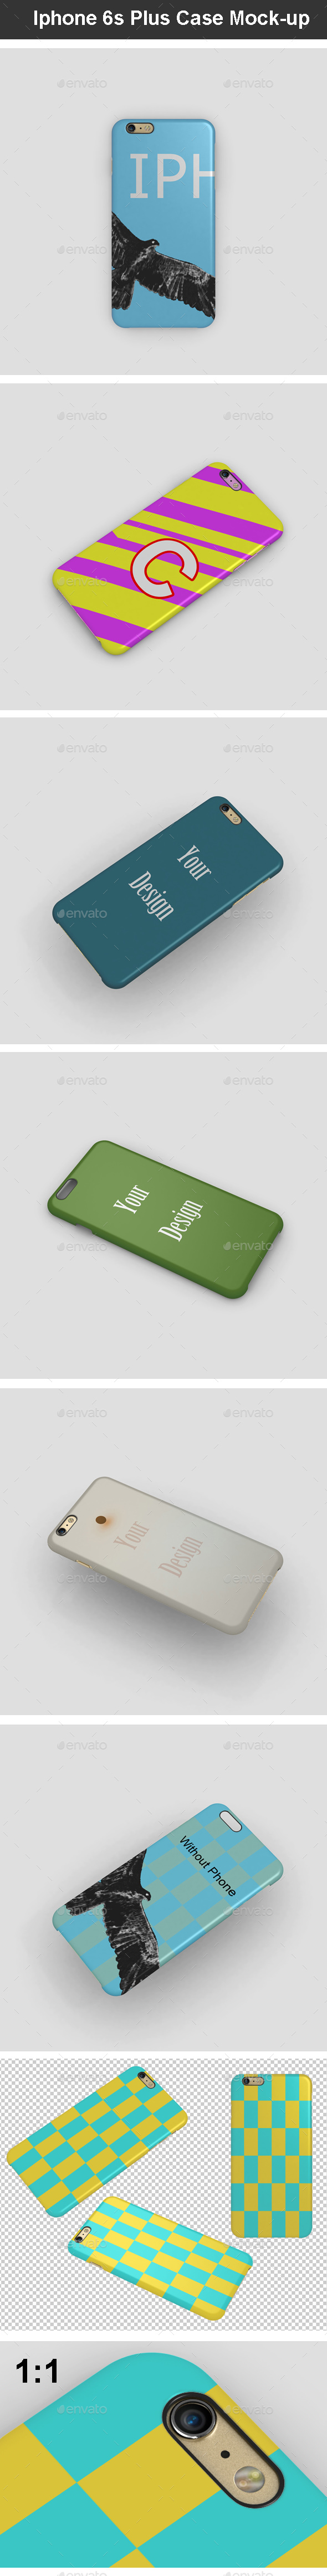 Iphone 6s Plus Case Mock-up - Mobile Displays